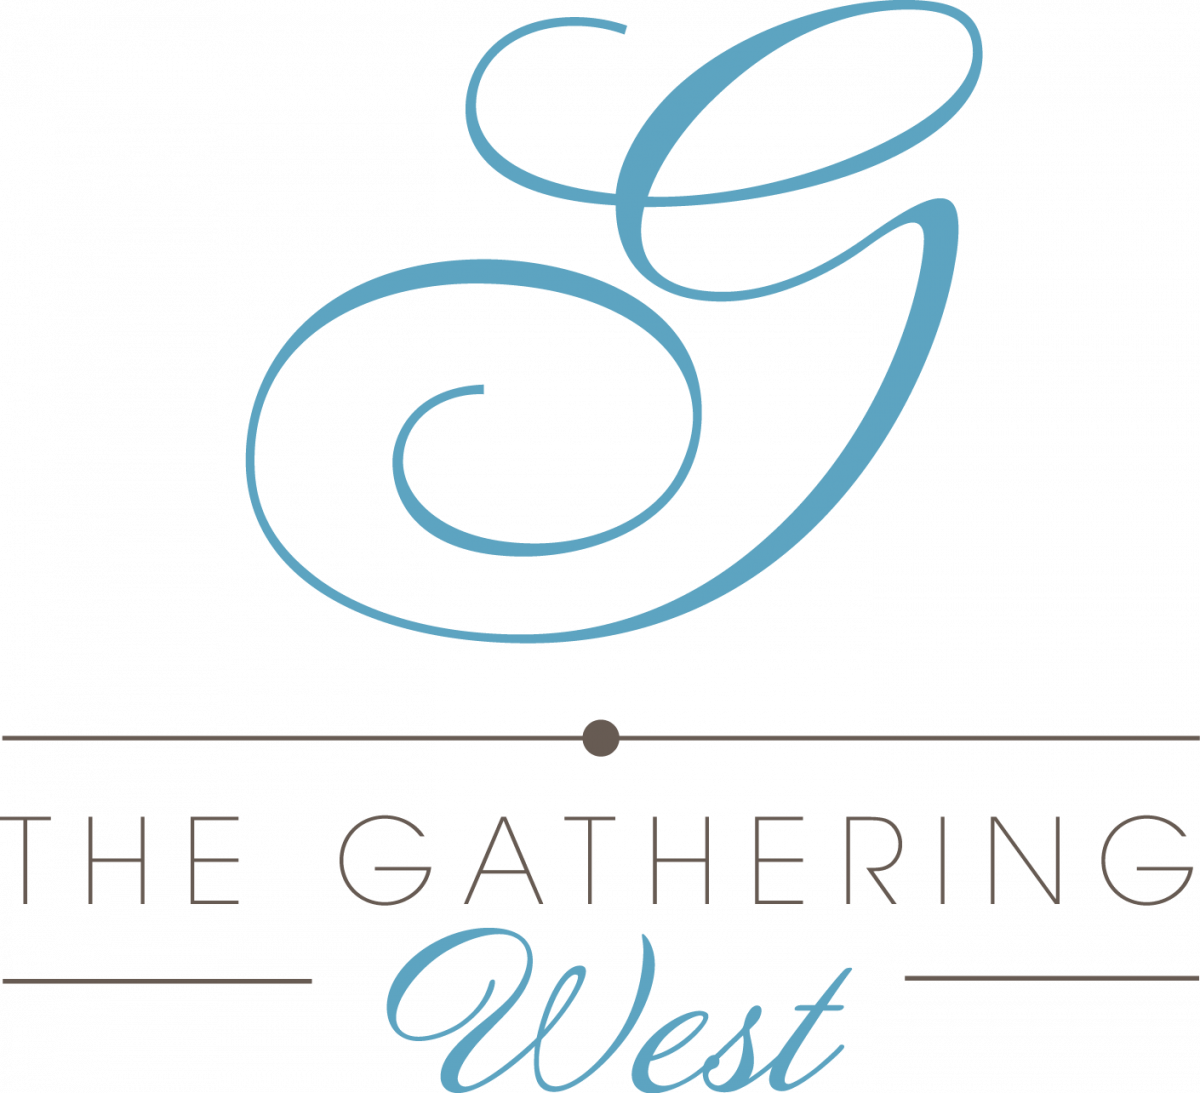 The Gathering West